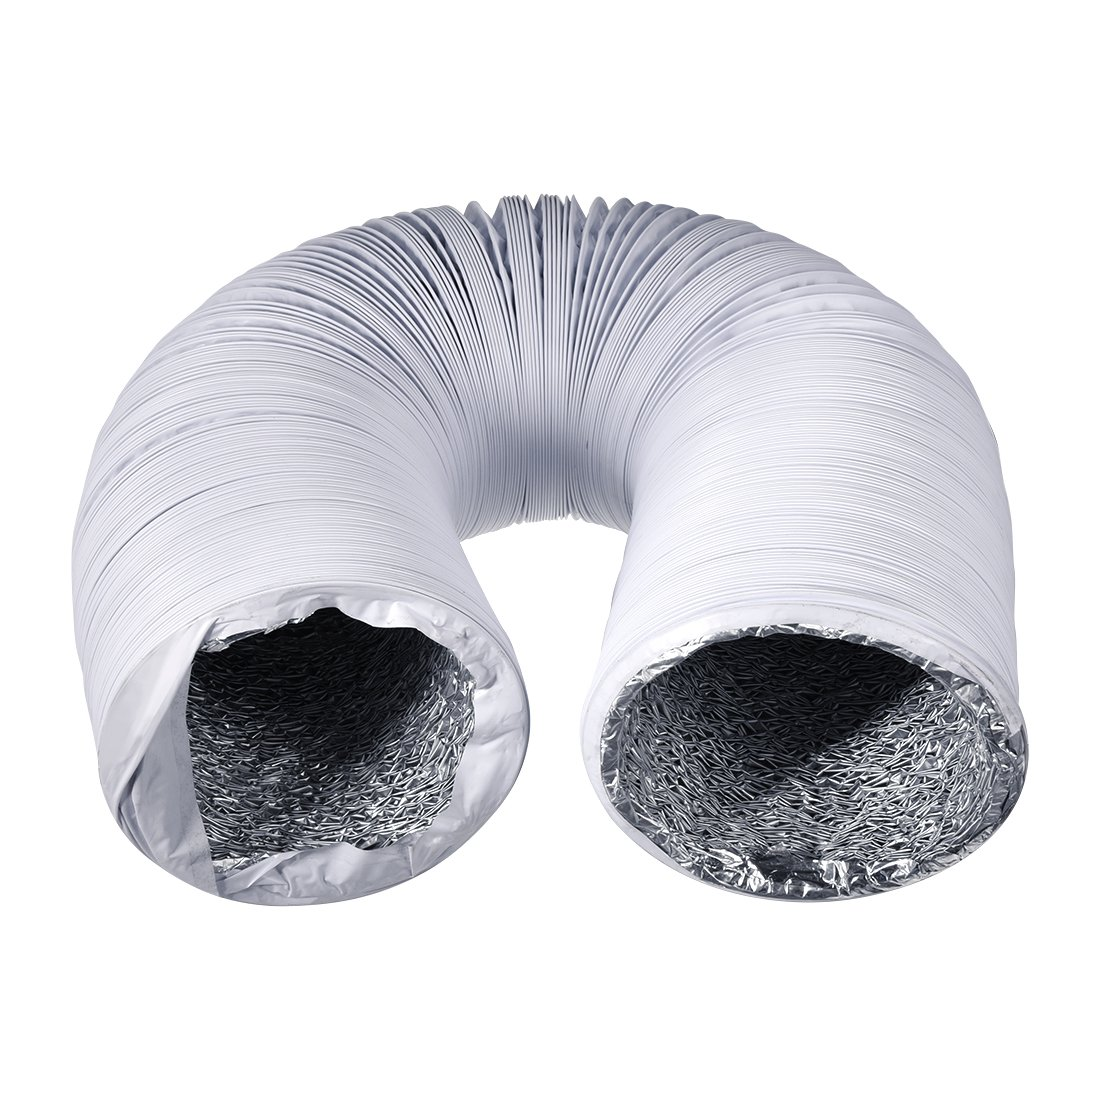 uxcell 6 Inch Aluminum Foil Duct Hose Grow Tent Room Ventilation System 26Ft Flexible Air Intake Helix Pipe HAVC